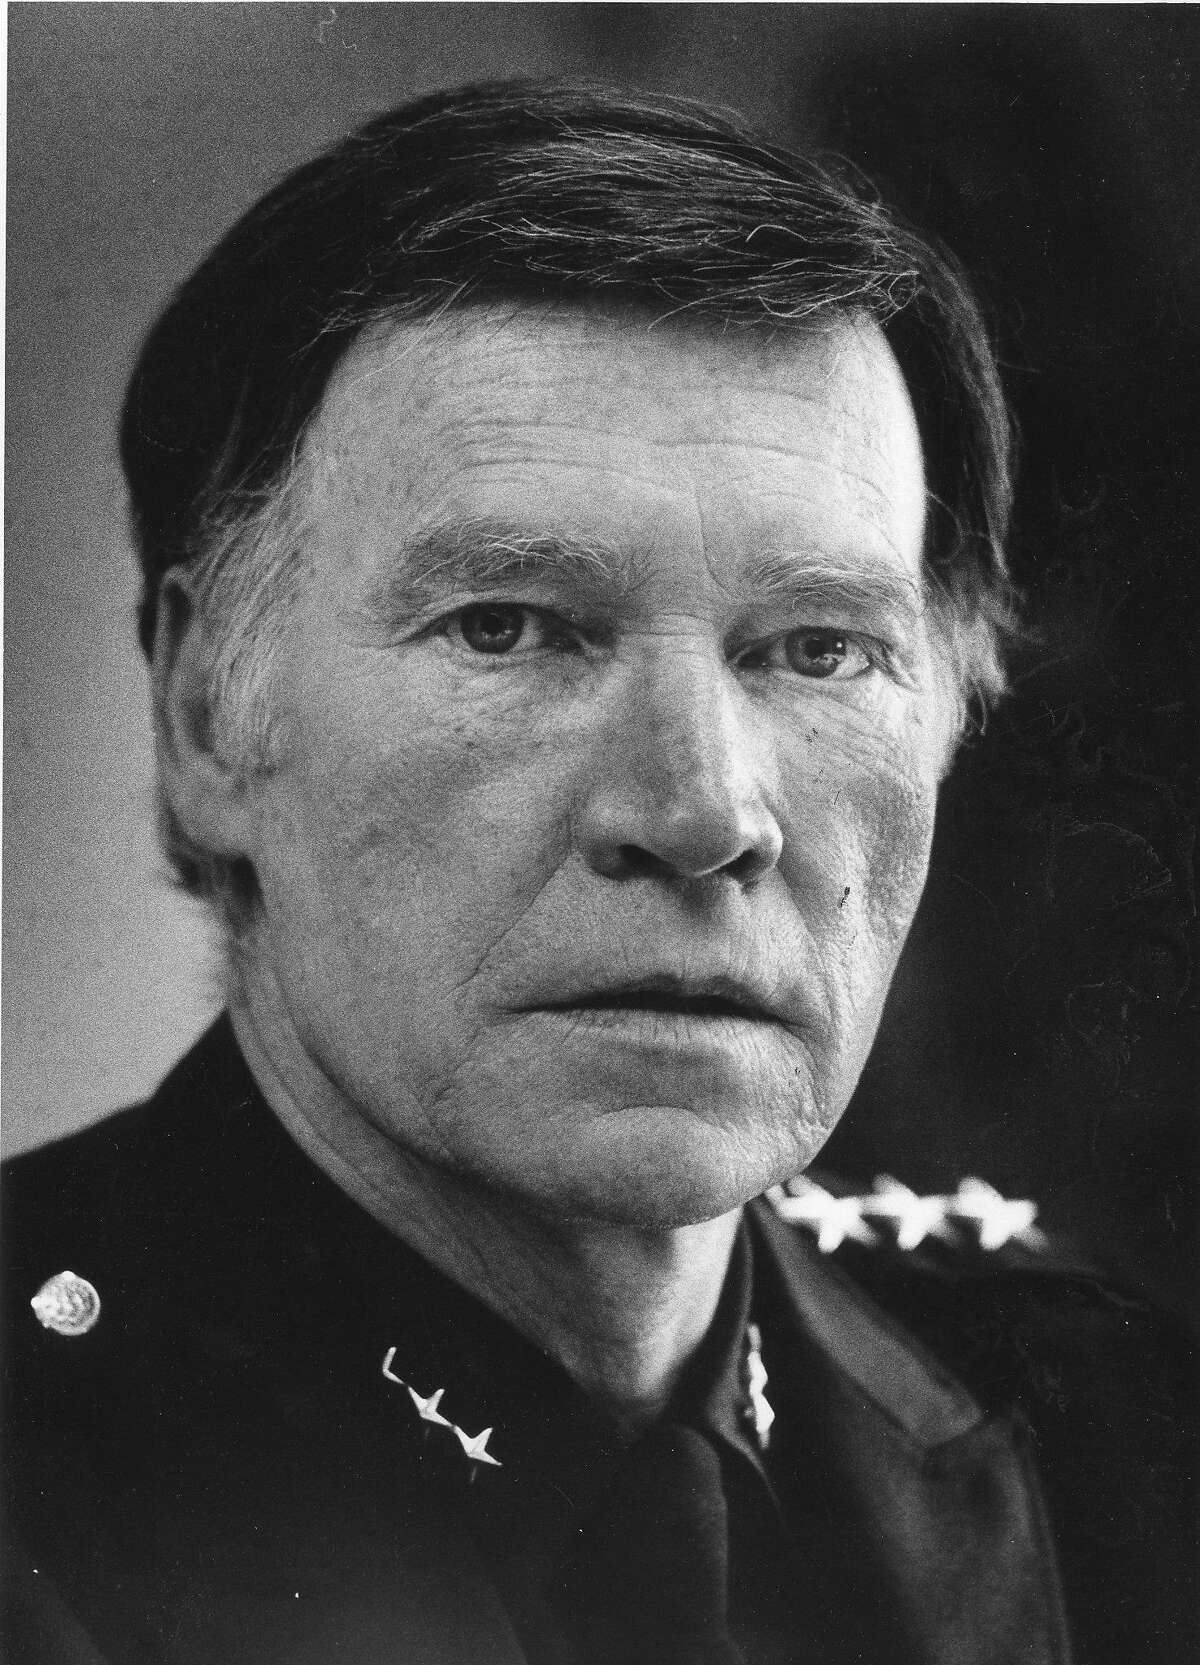 Police Chief Charles Gain, June 29, 1979